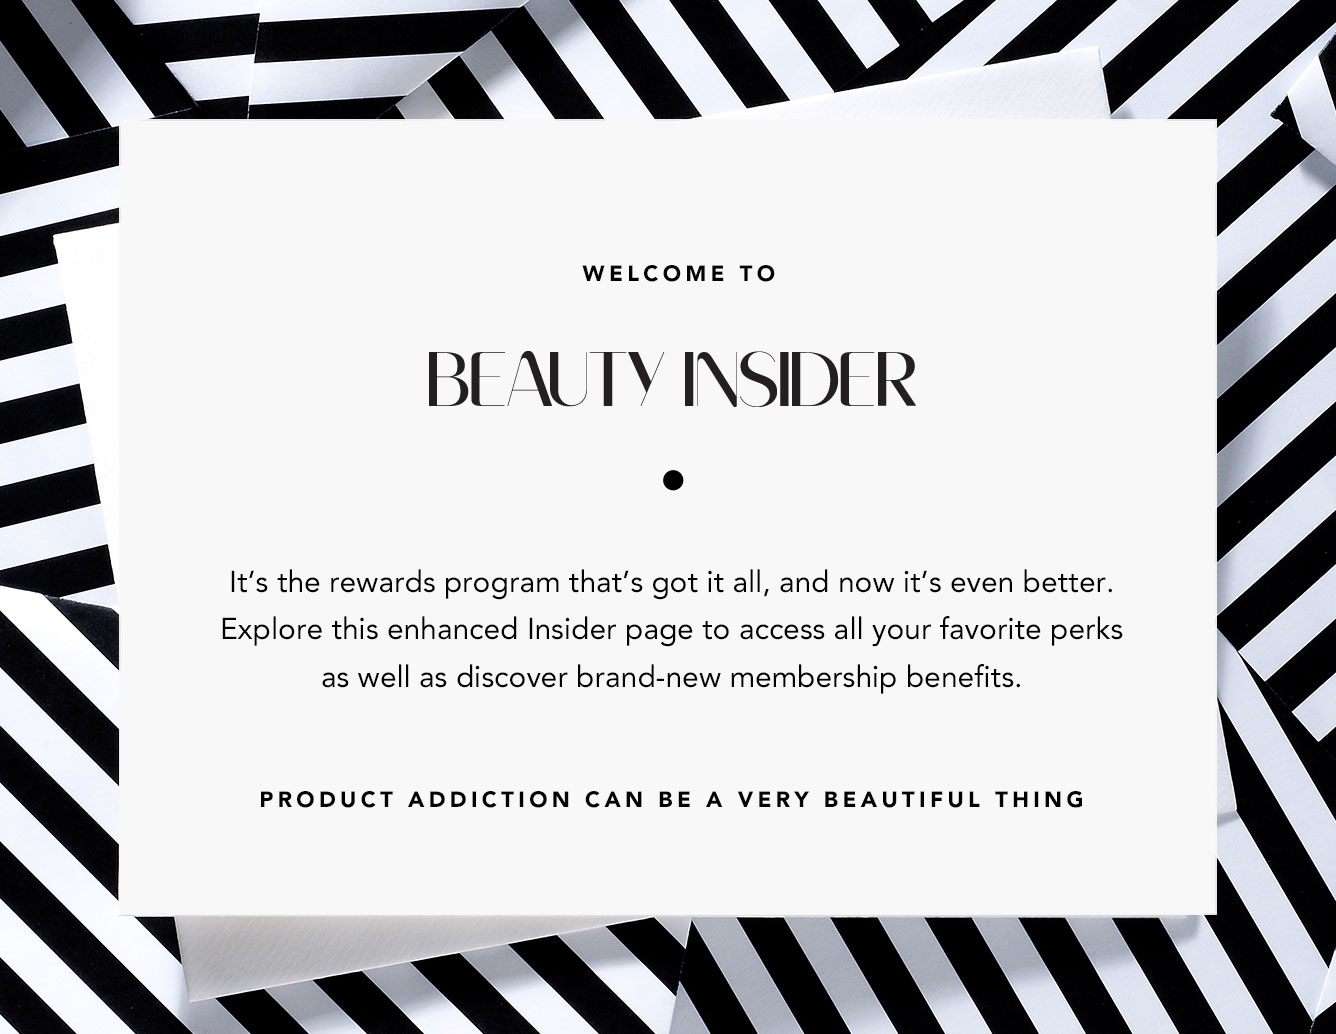 customer loyalty programs - sephora beauty insider